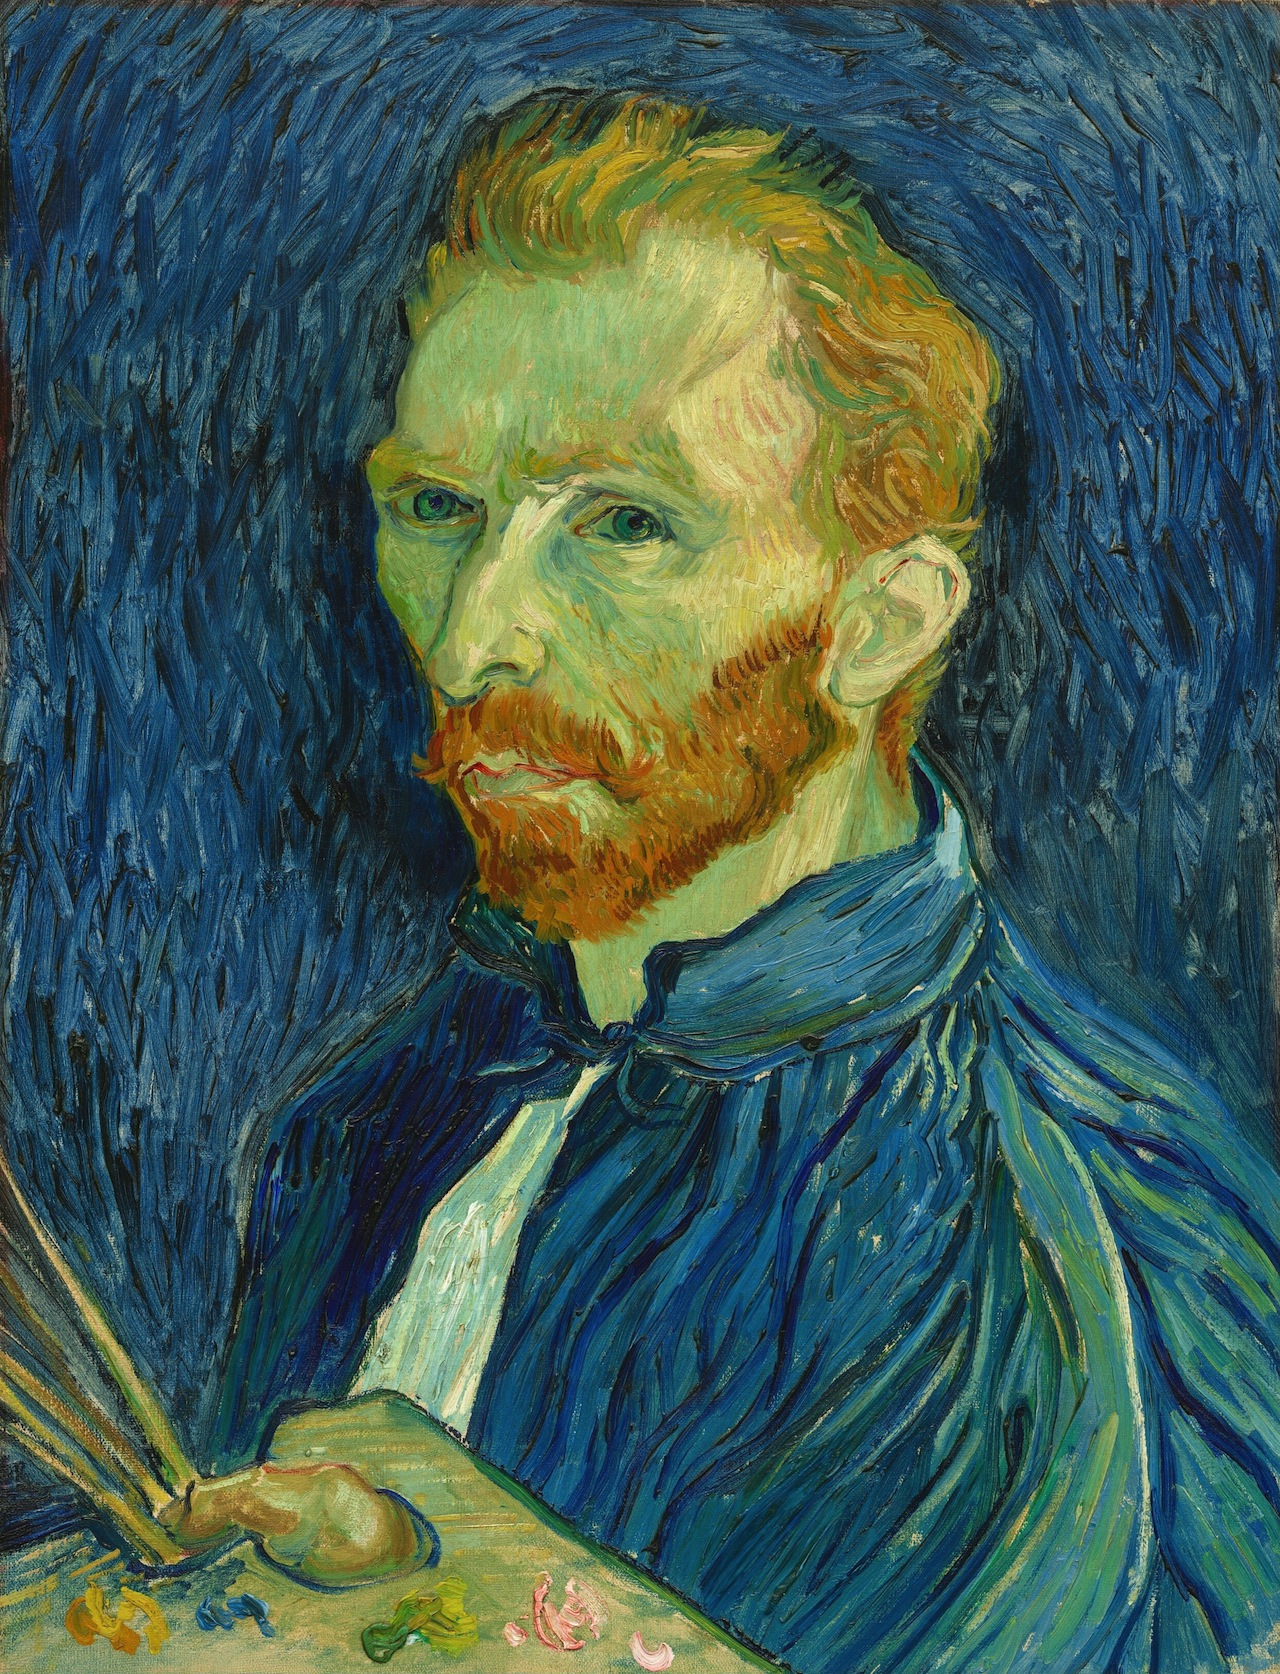 Self-Portrait, August 1889, Oil on canvas, National Gallery of Art, Washington D.C. (F626, JH1770) [1]